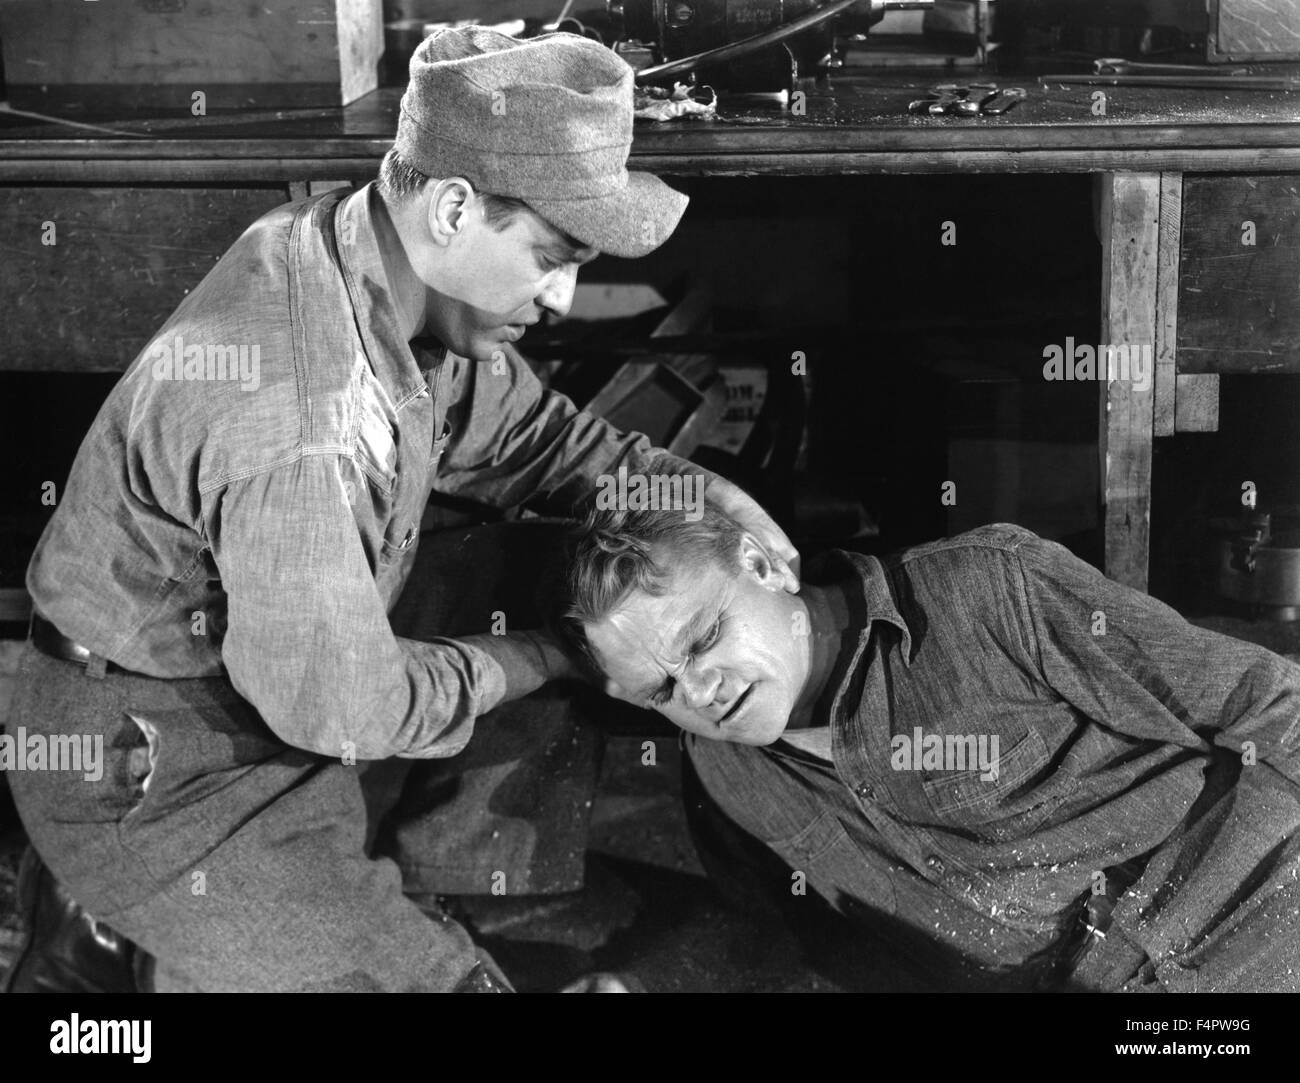 Edmond O'brien and James Cagney / White Heat / 1949 directed by Raoul Walsh [Warner Bros. Pictures] - Stock Image